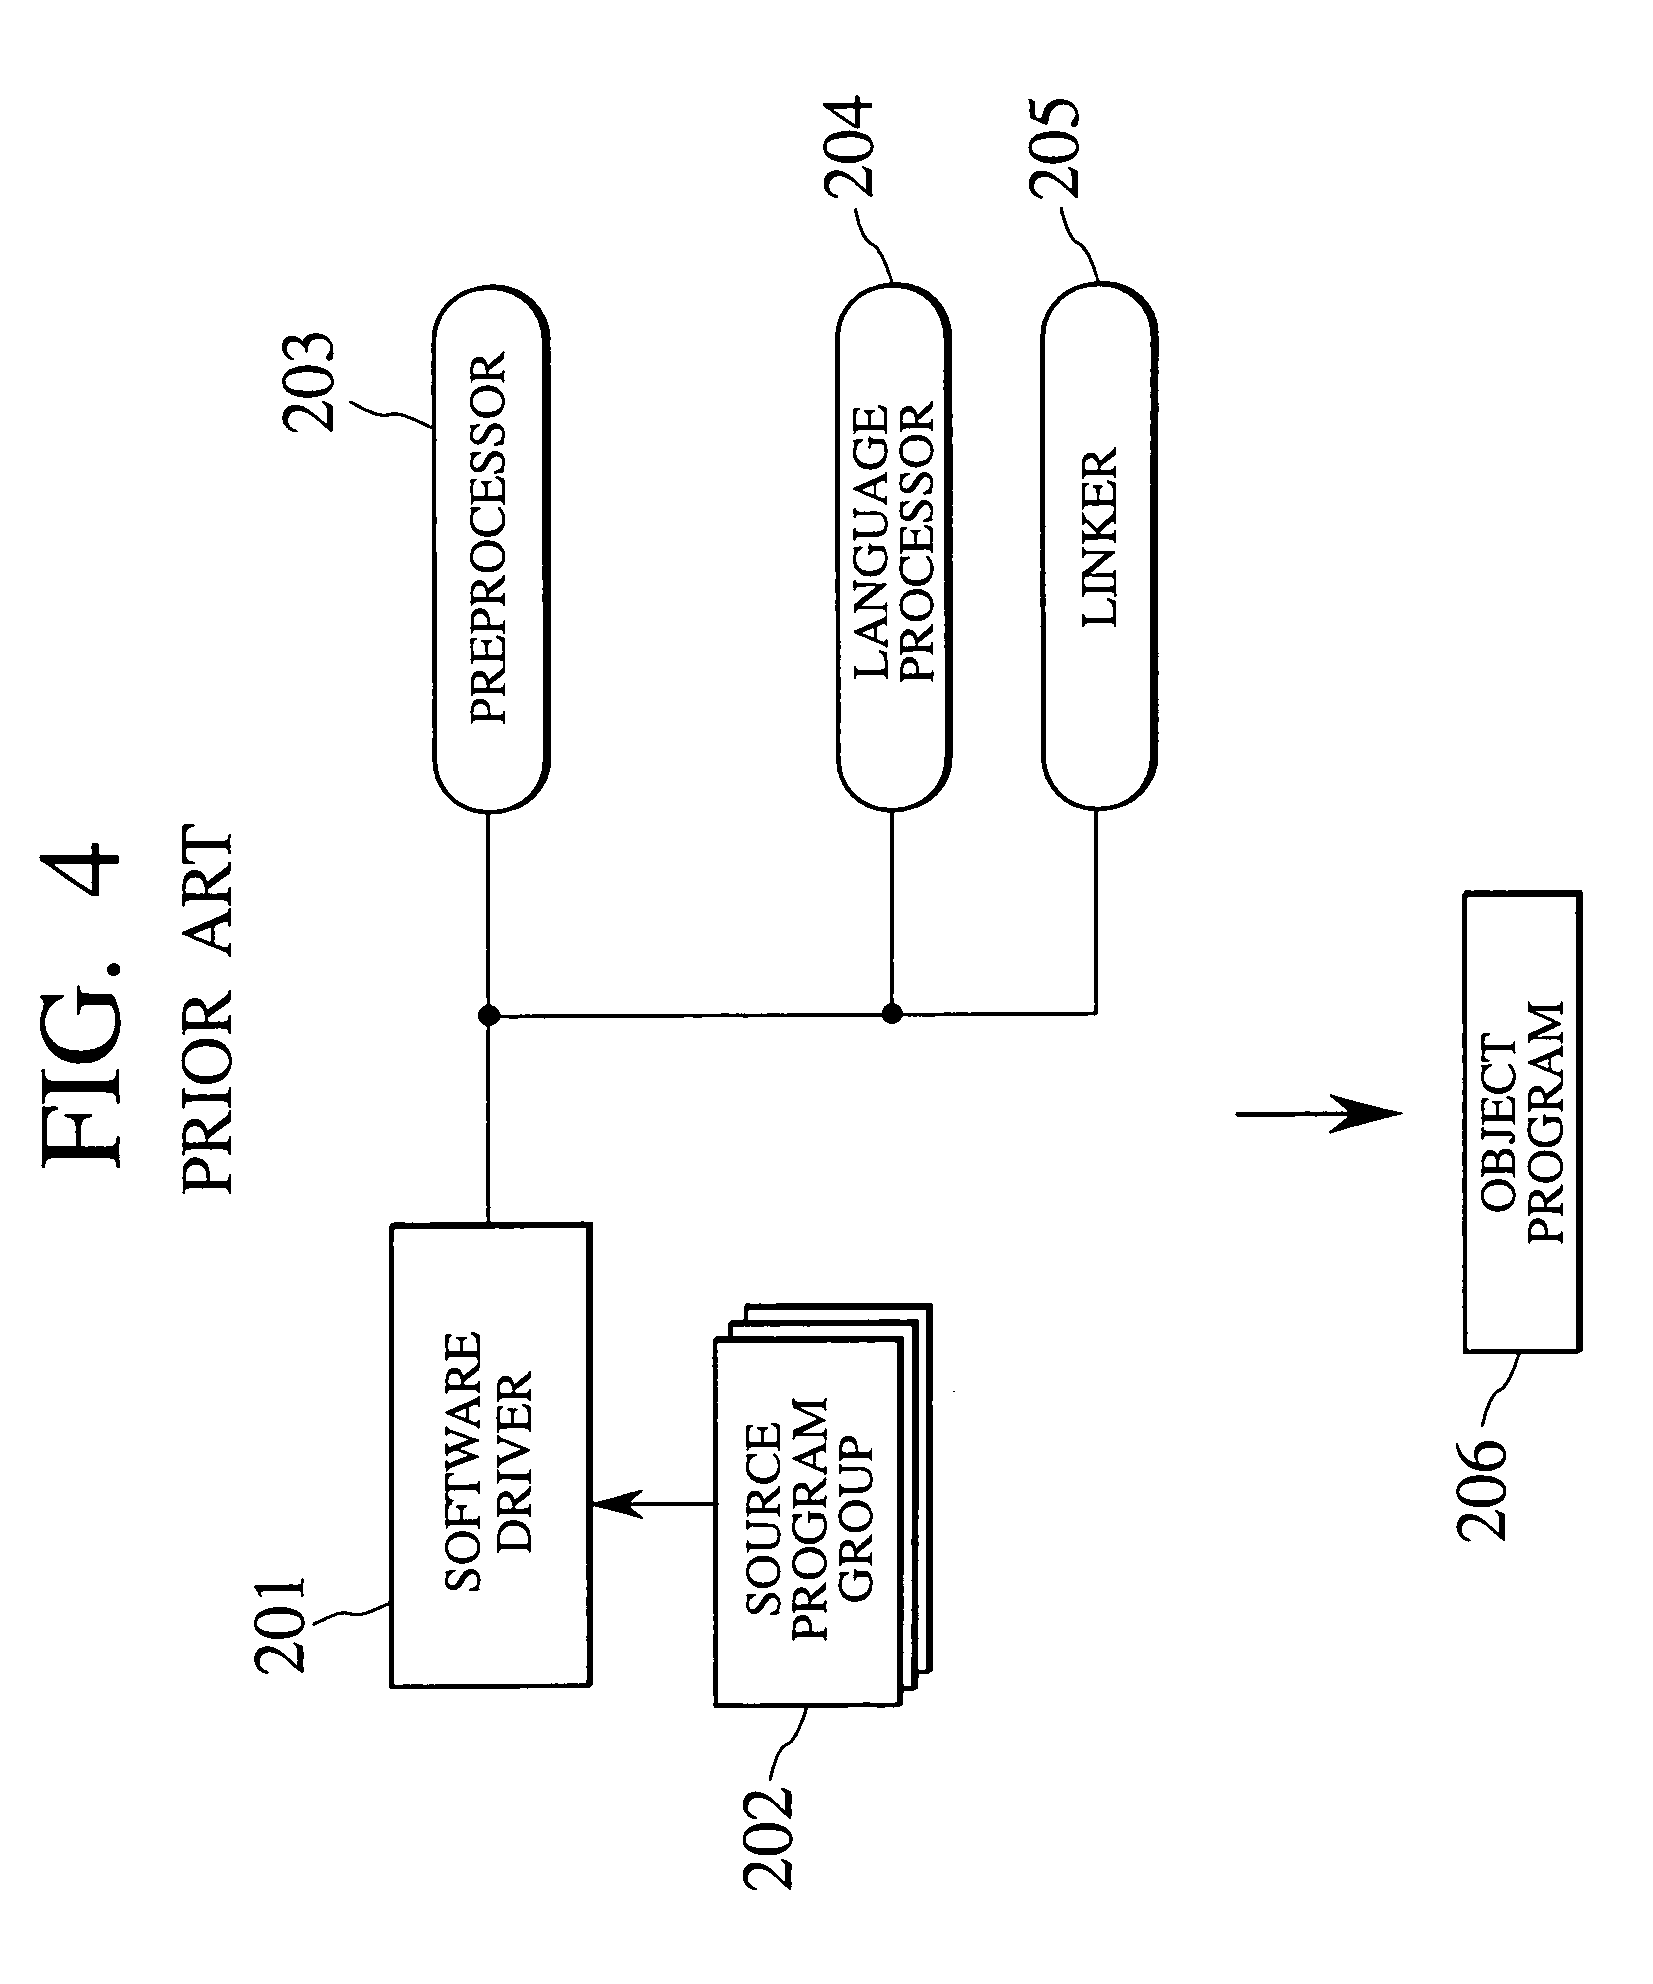 US6983458B1 - System for optimizing data type definition in program language processing, method and computer readable recording medium therefor         - Google PatentsFamily